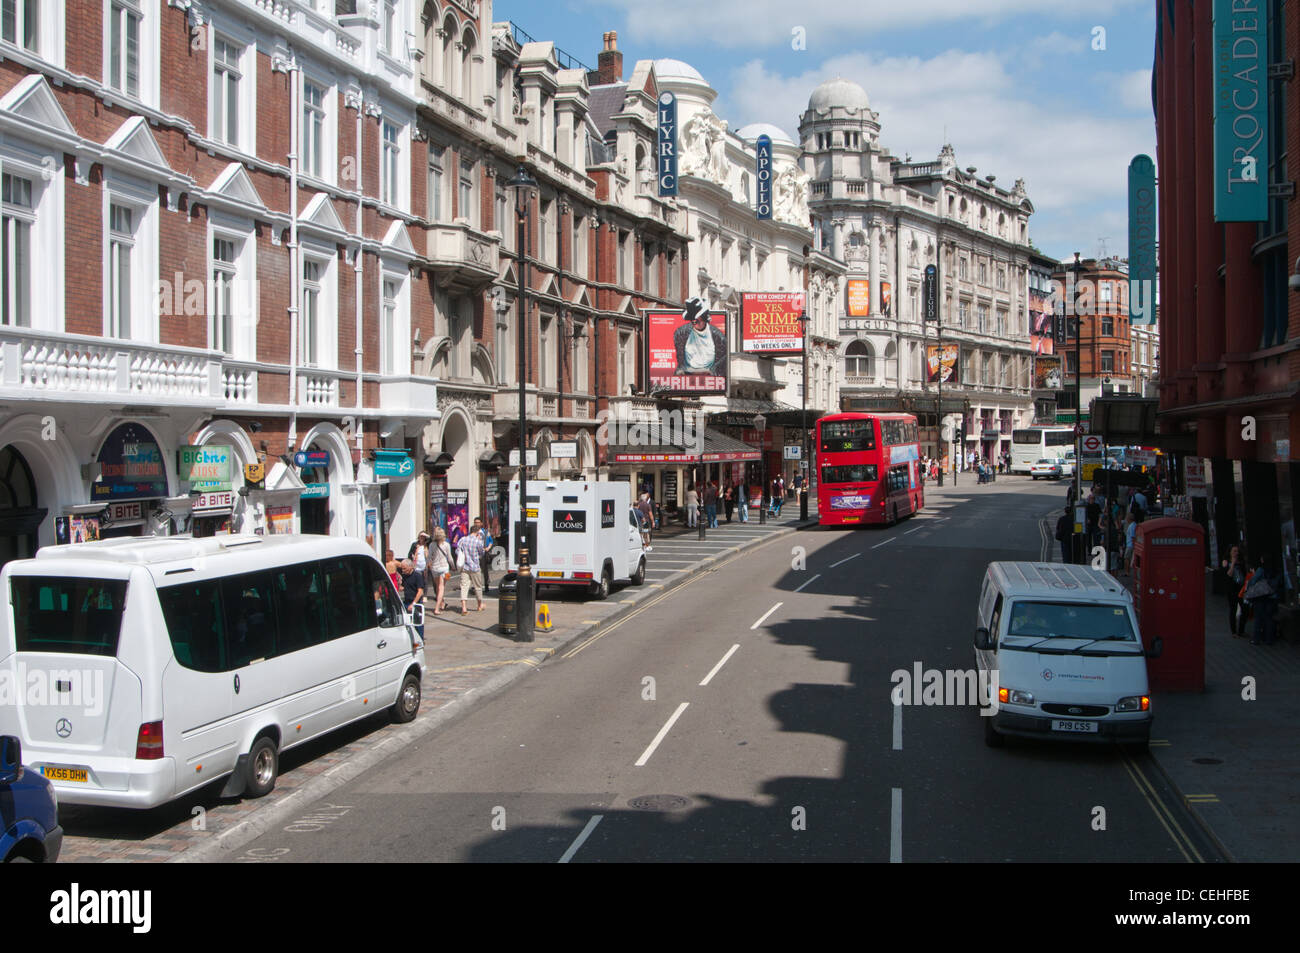 Shaftesbury Avenue in the London theatreland. - Stock Image